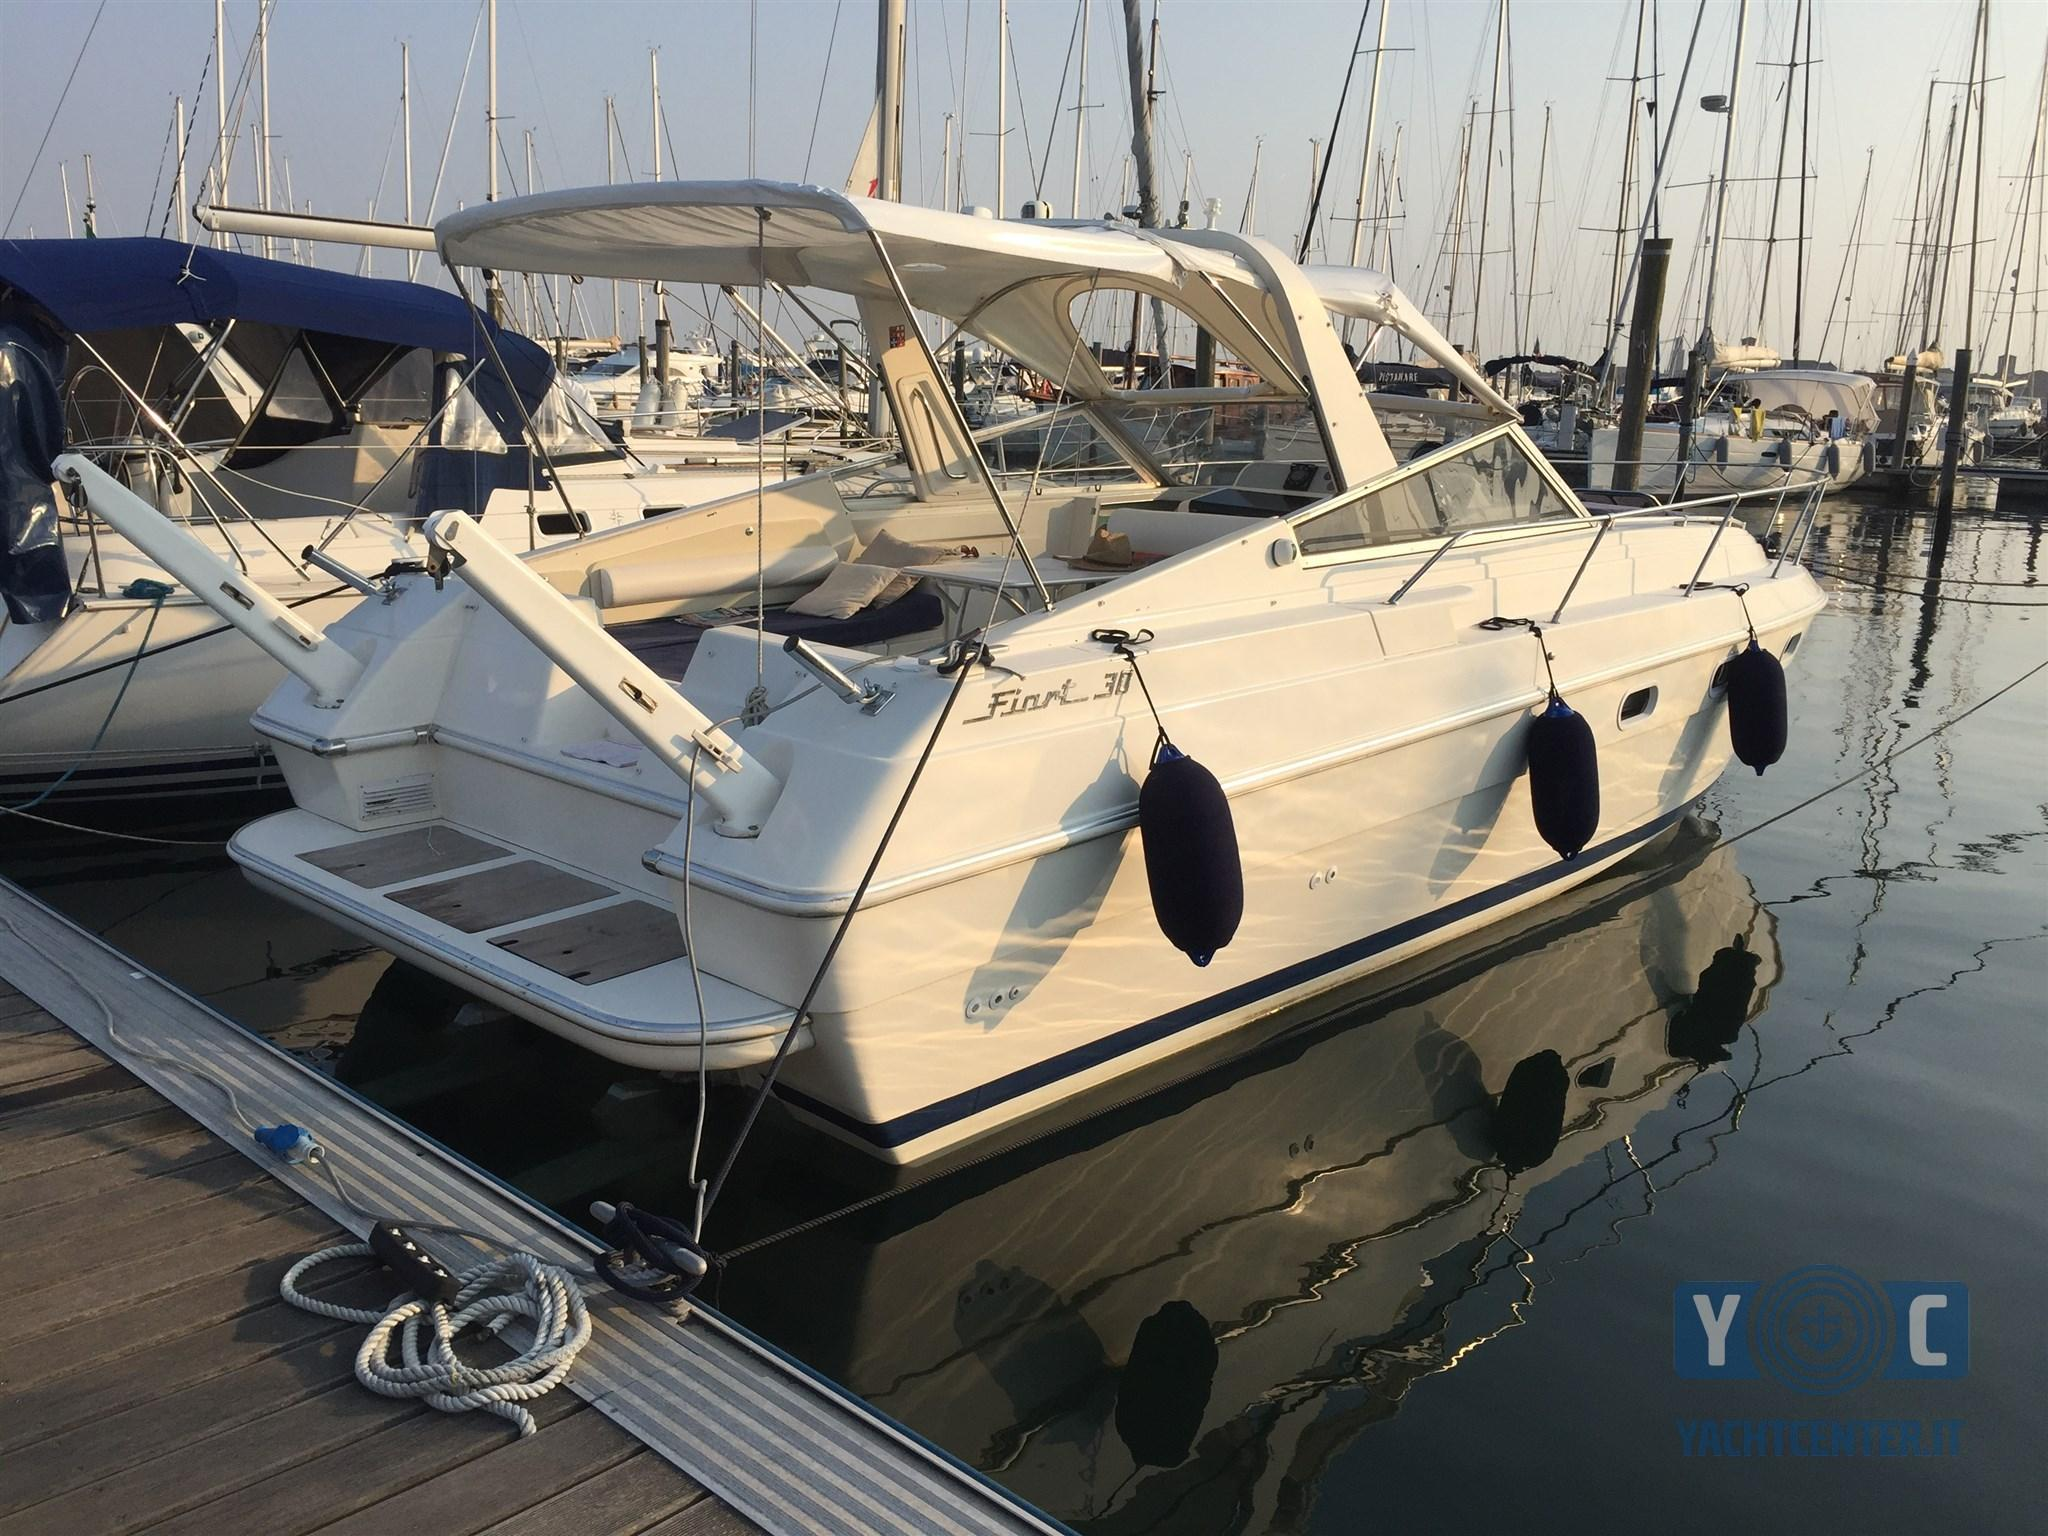 6293851_20170709054605912_1_XLARGE&w=520&h=346&t=1499608073000 search boats for sale yachtworld com  at soozxer.org